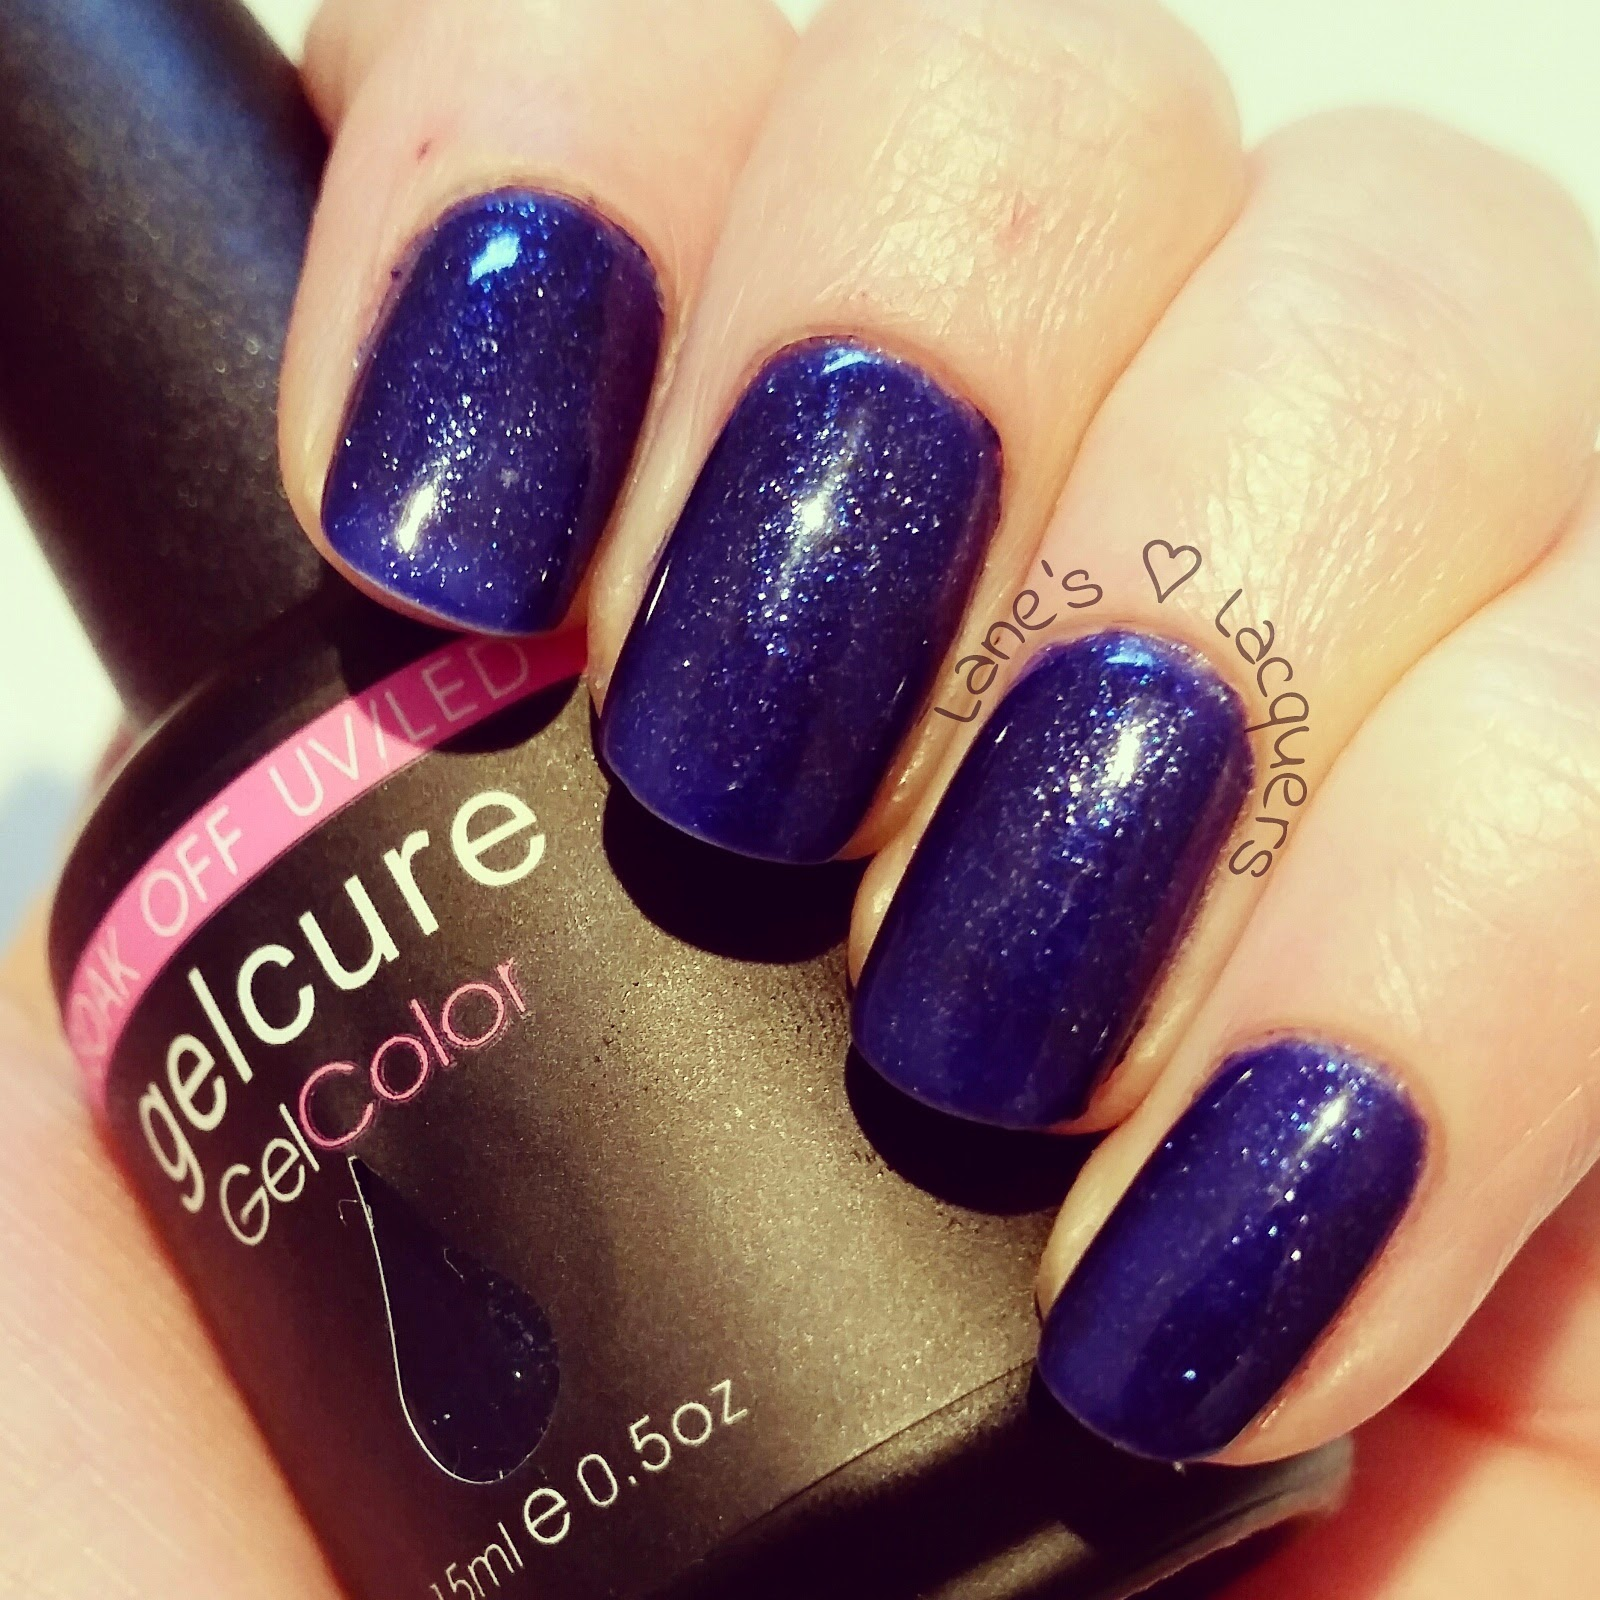 gelcure-gel-polish-colour-150-dark-blue-shimmer-swatch-review